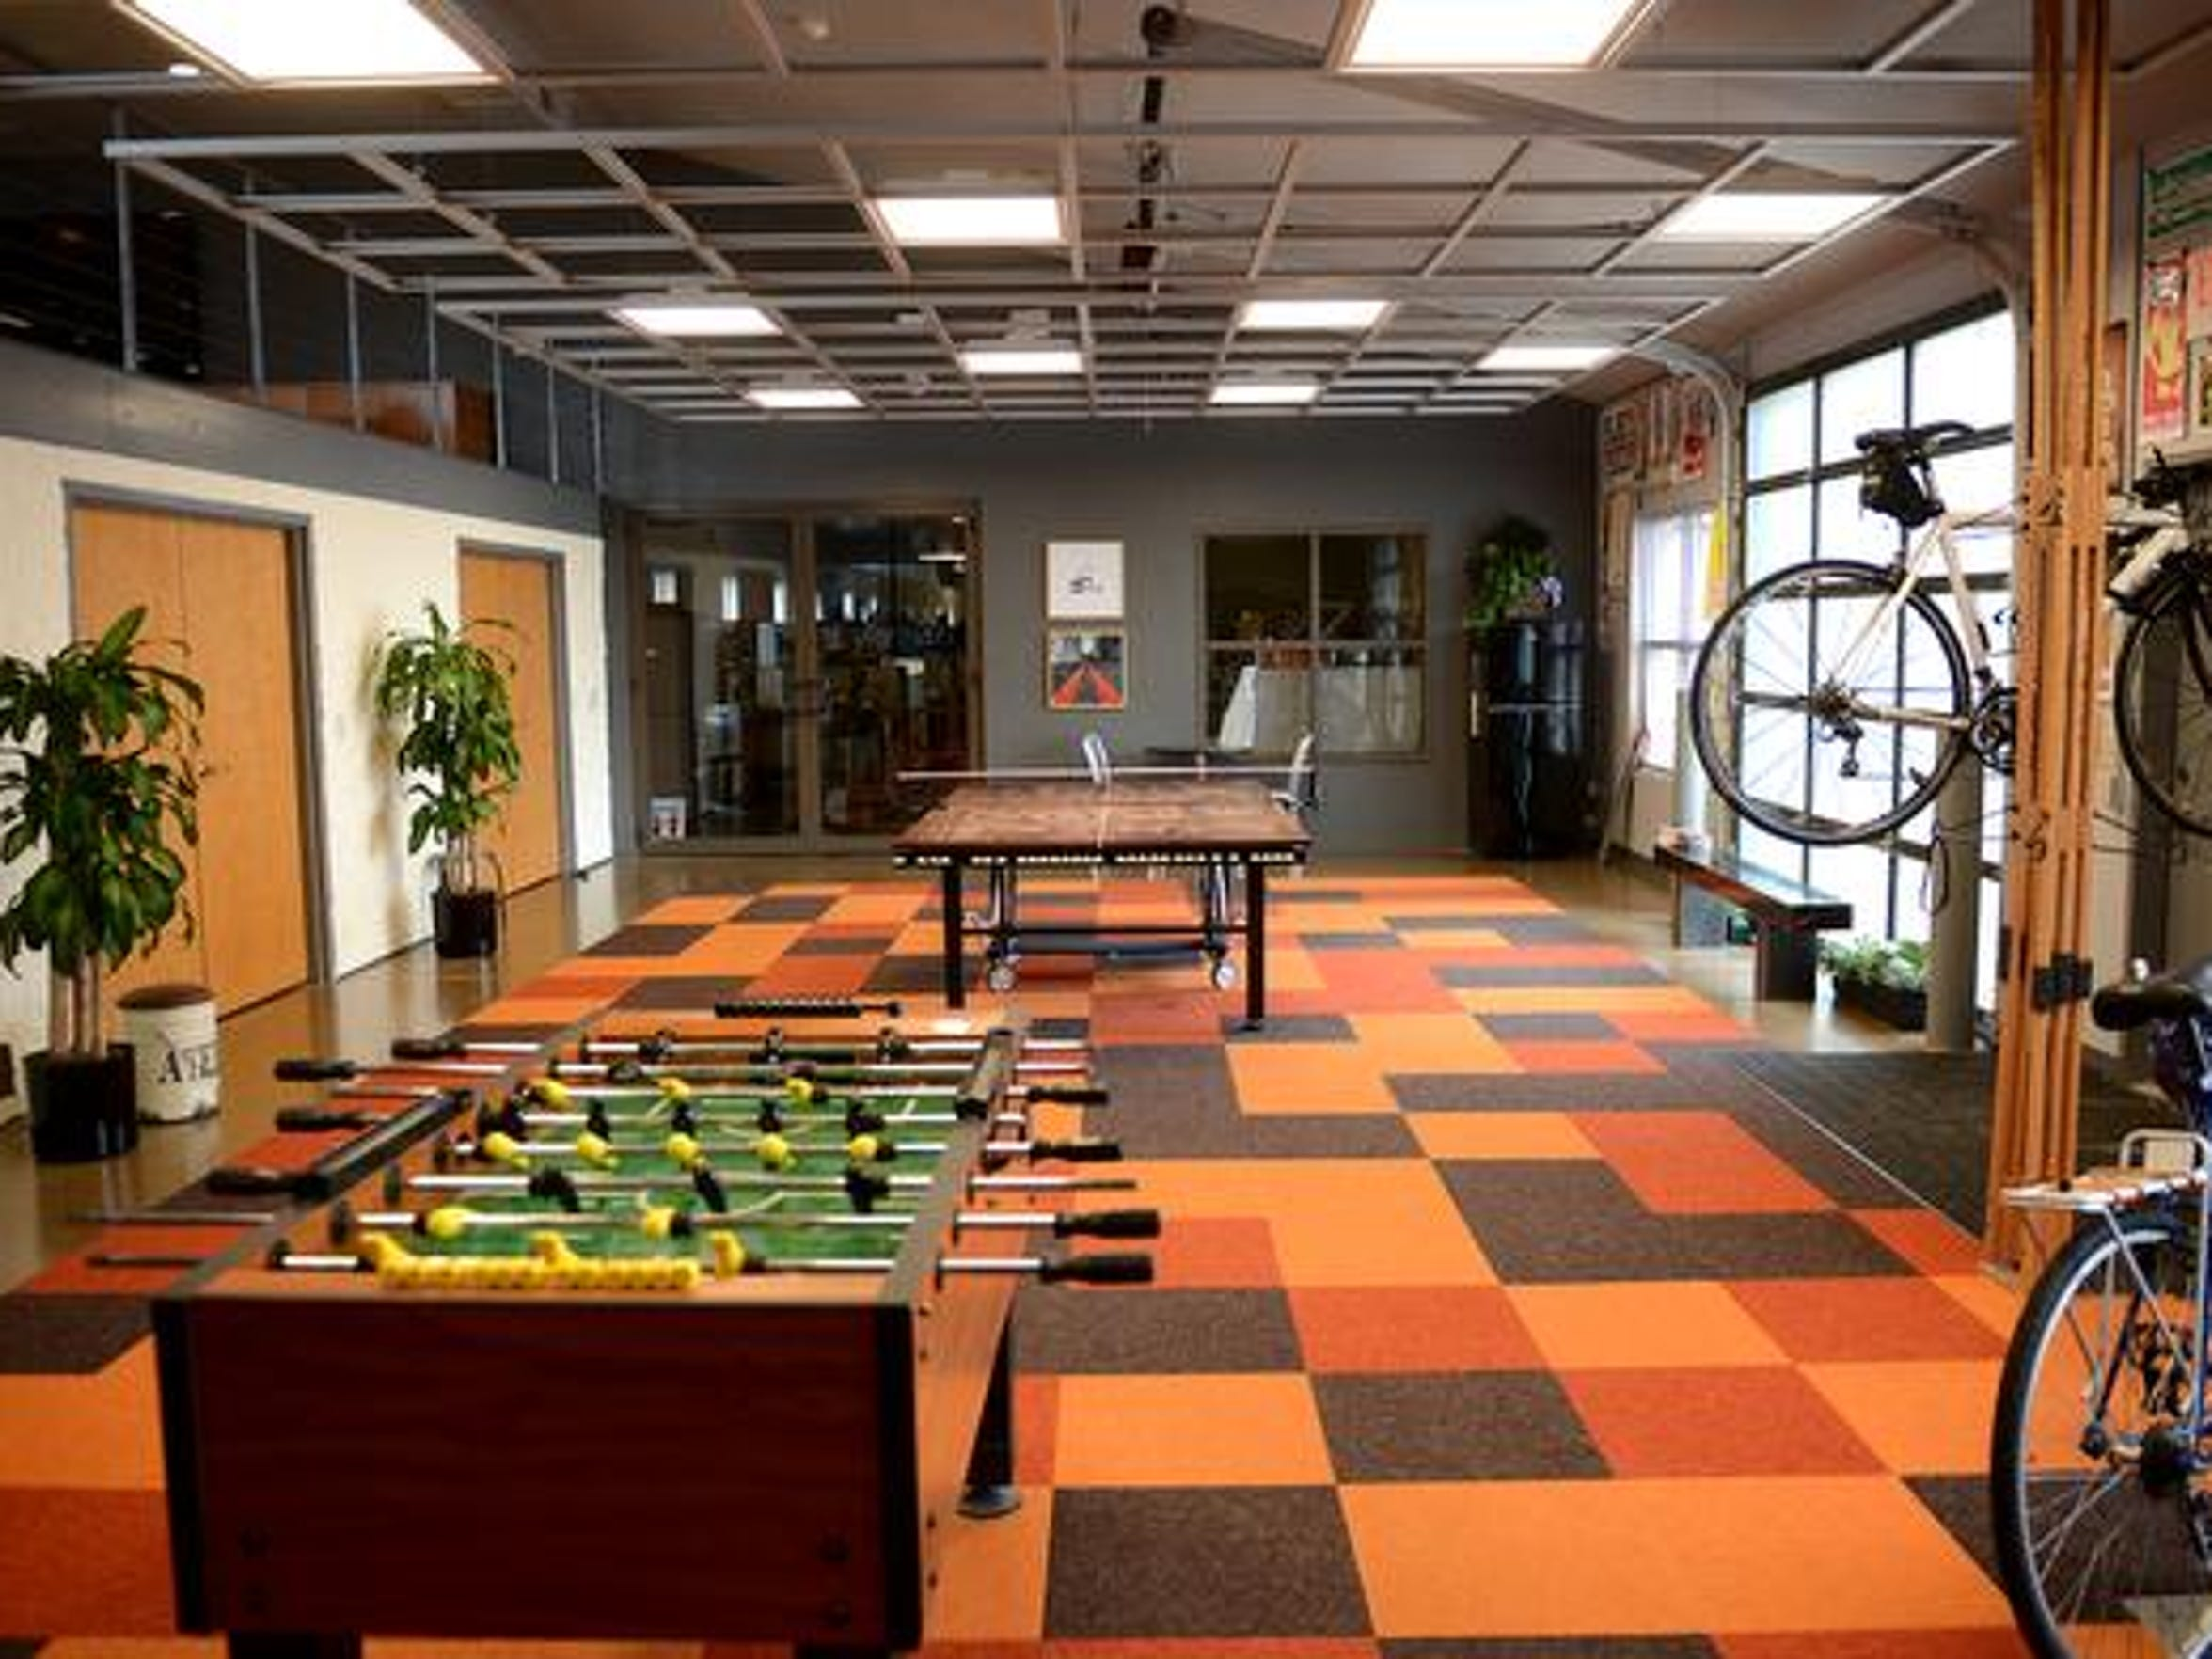 Former warehouse space was converted into a game room